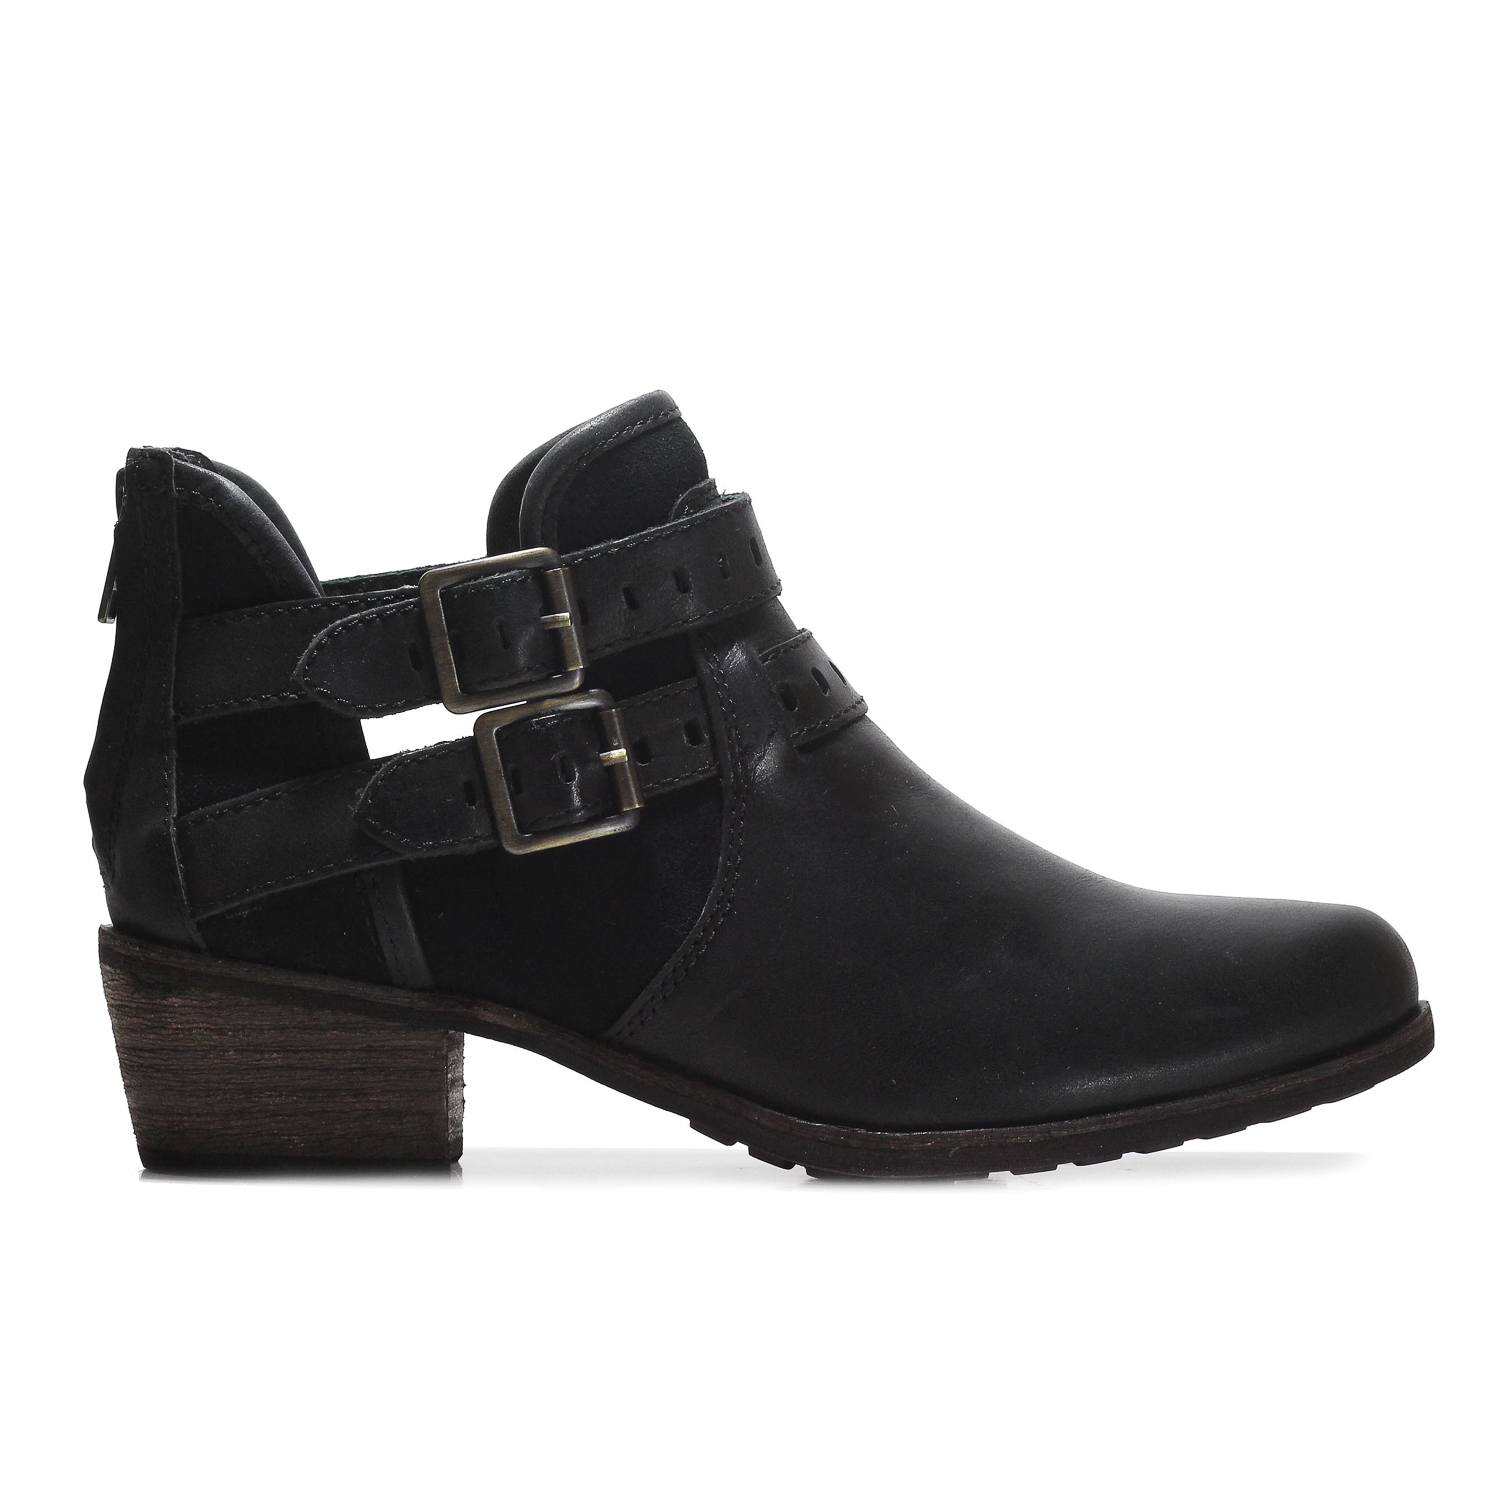 c54620d2c66a Ugg Australia Patsy Women Round Toe Ankle Boot shoes 1010203W Black ...